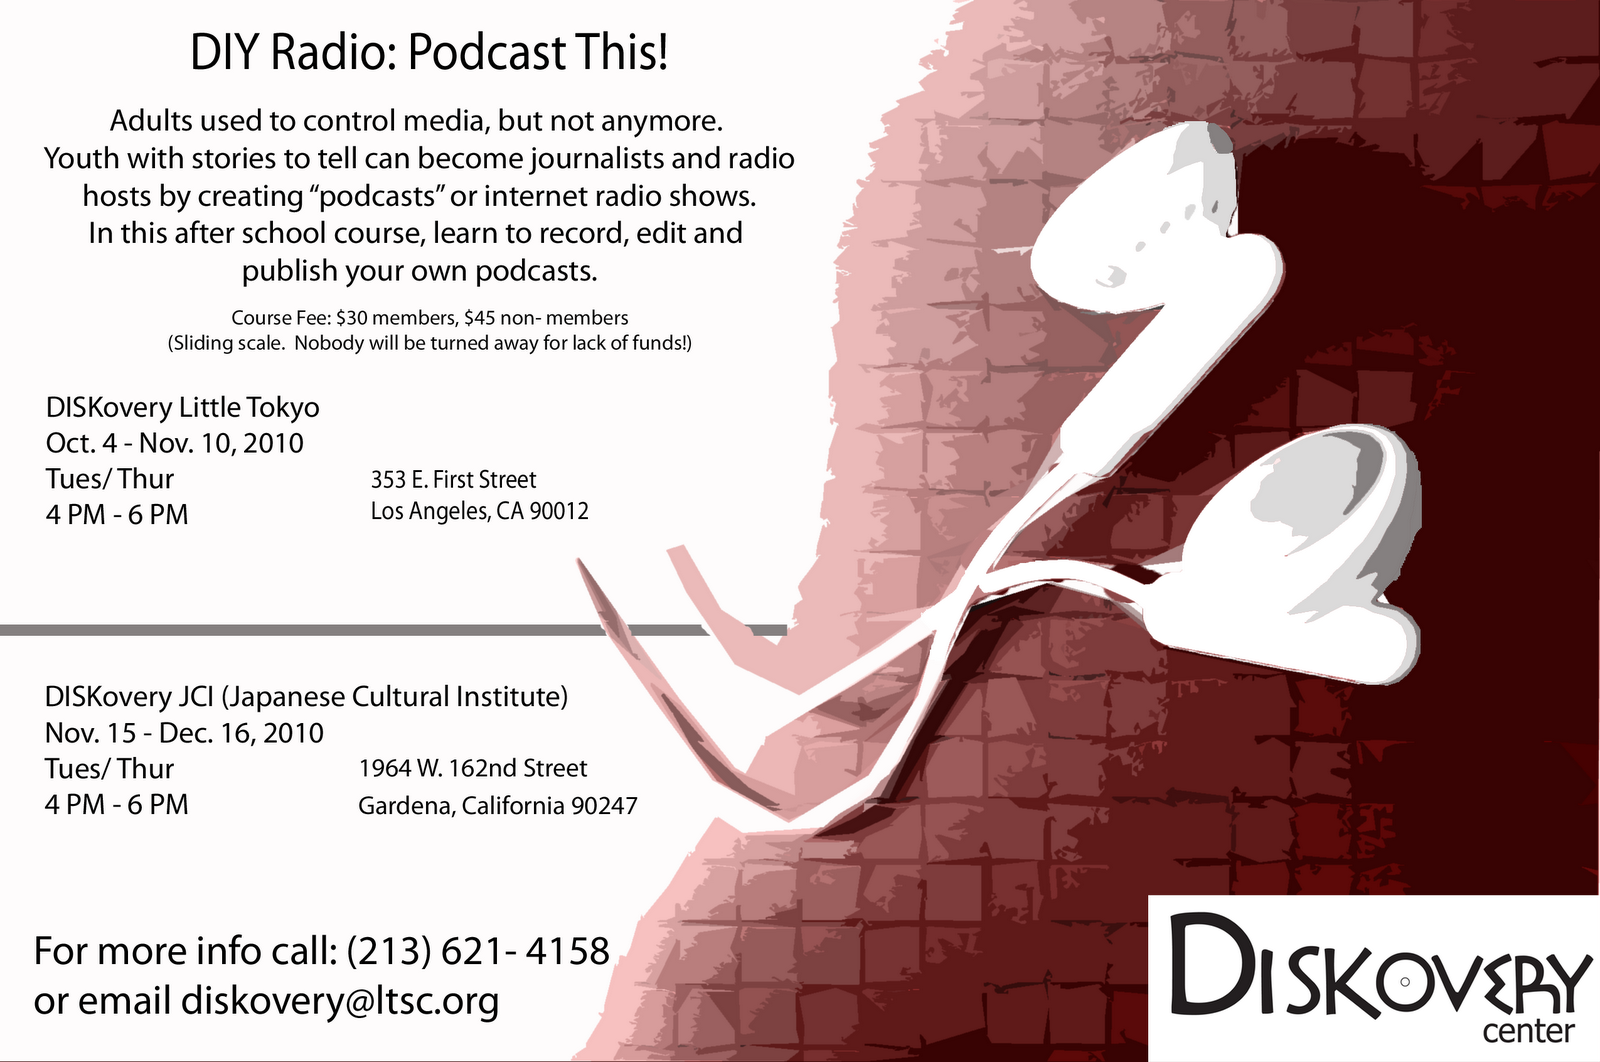 Little Tokyo UnBlogged: DIY Radio: Podcast This! New Youth